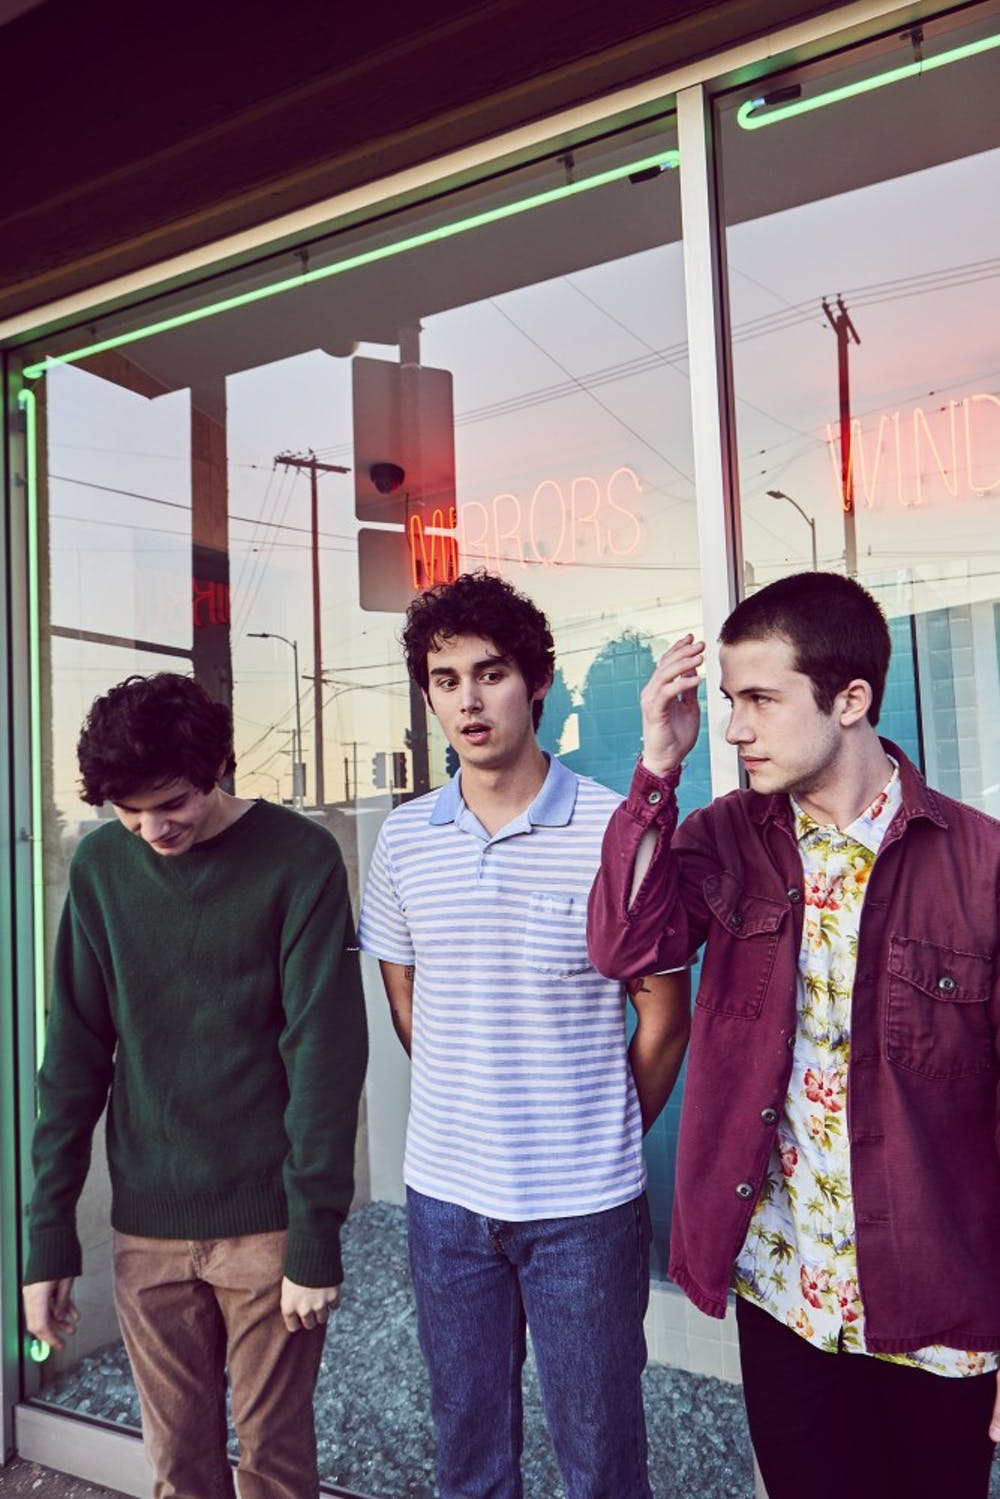 Get to know Wallows before their show at Cat's Cradle on March 6